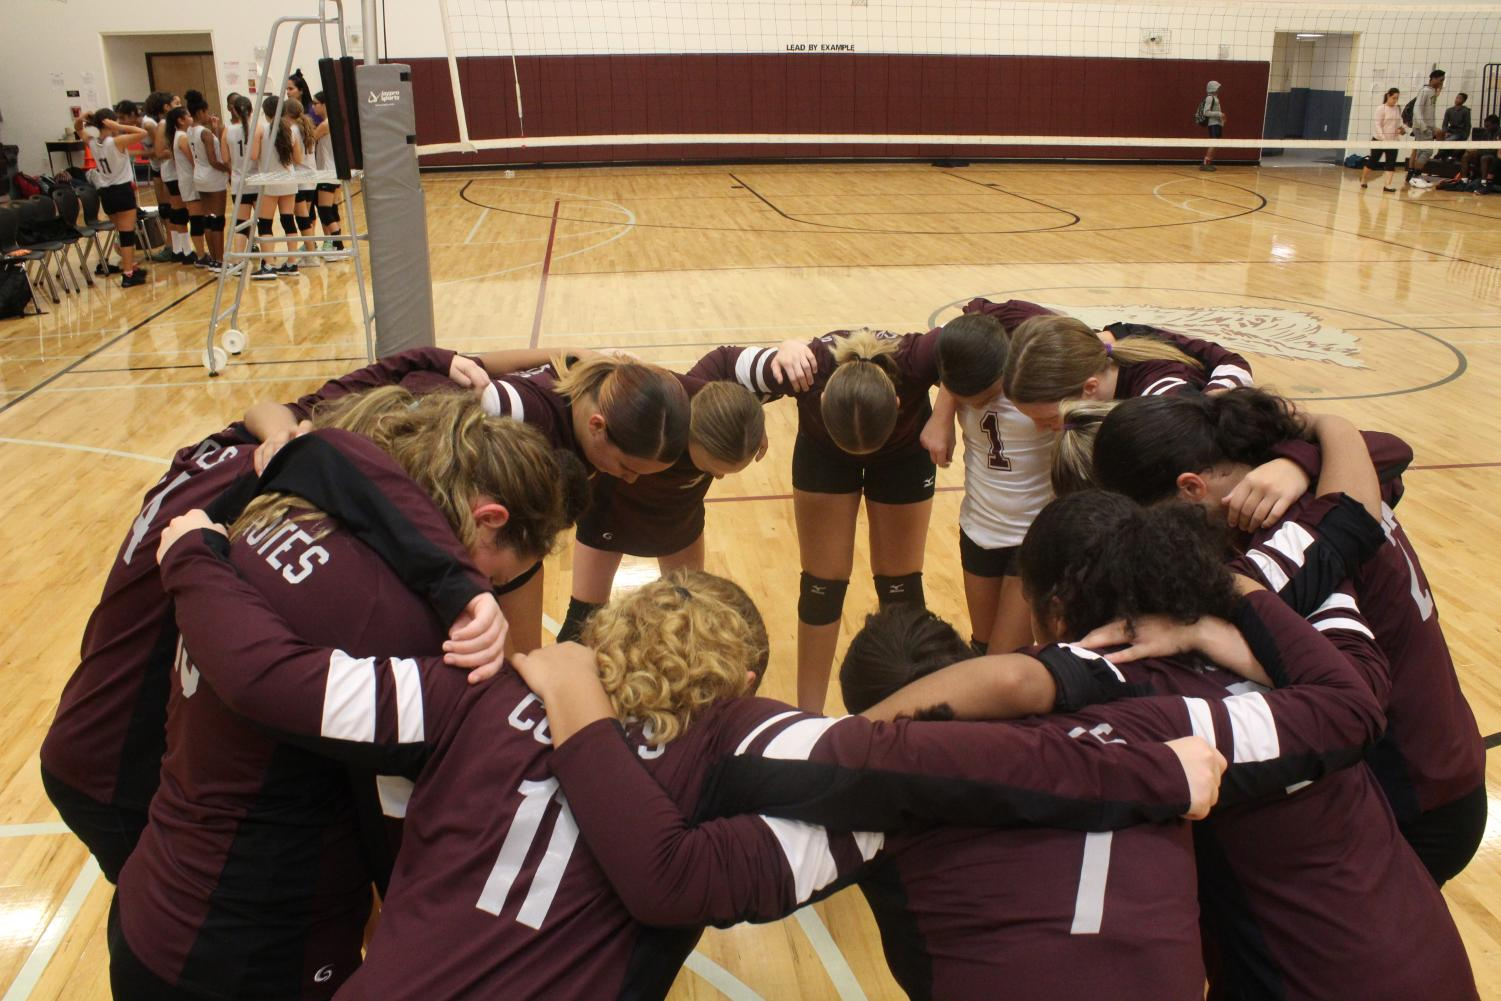 Middle school volleyball team huddled together for a pregame pep talk a few moments before the game against Tapestry begins.